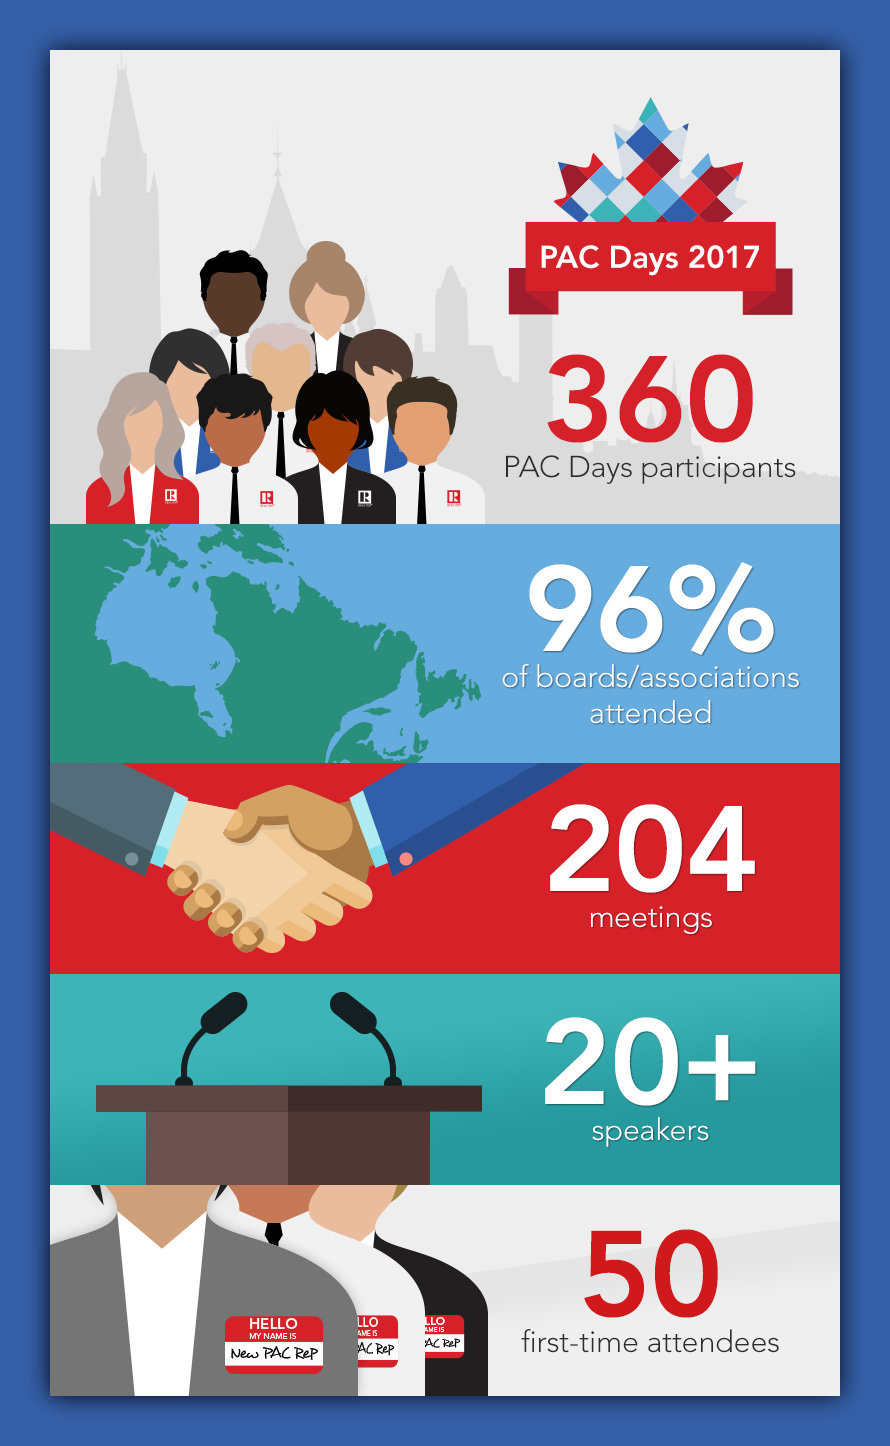 PAC Days by the numbers